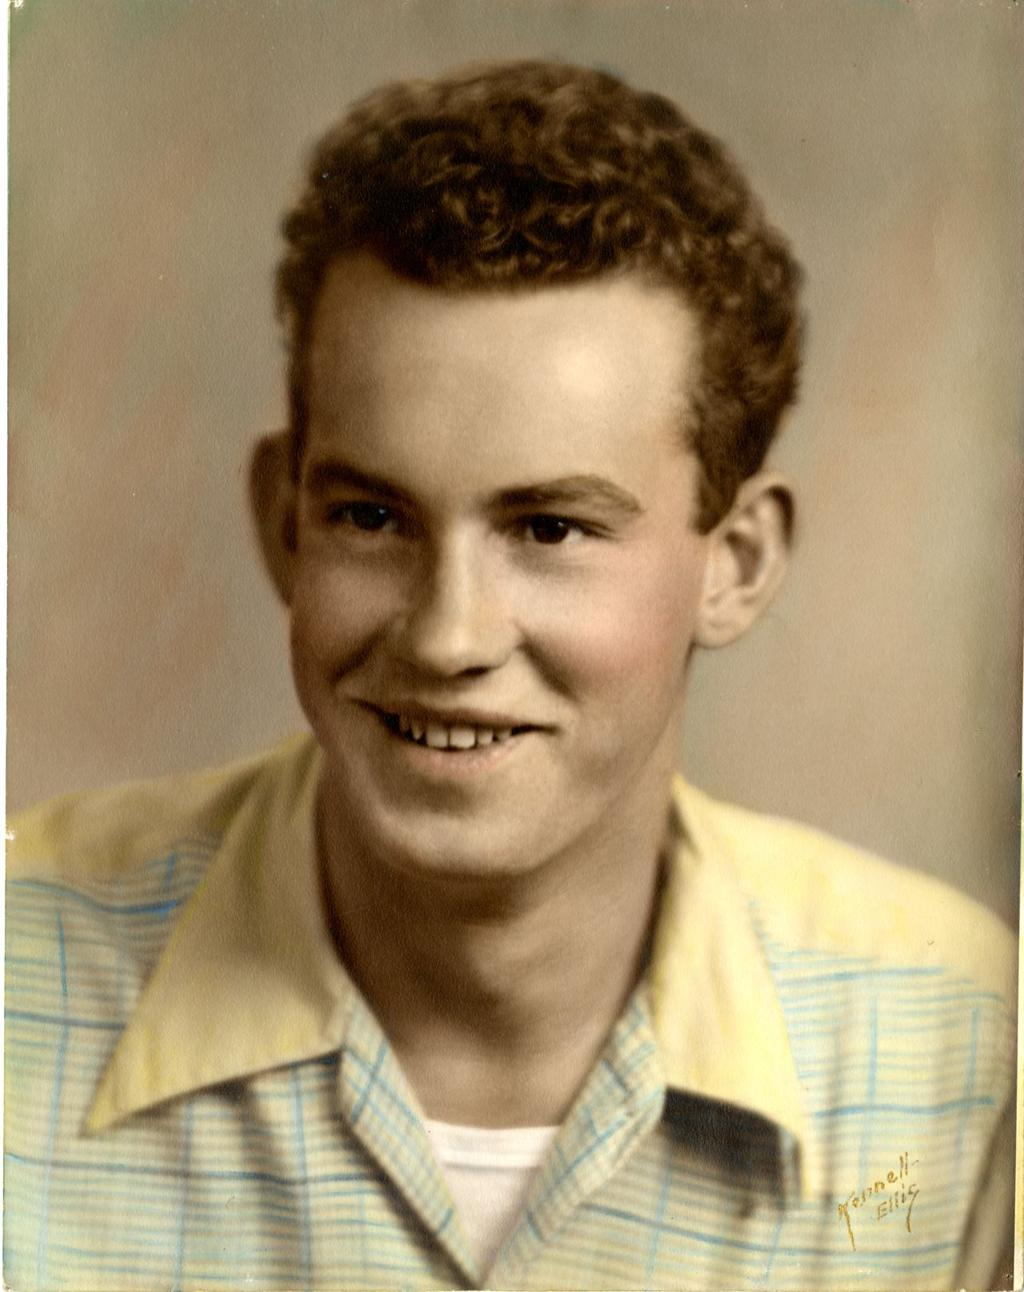 Robert Marcus Bieren Obituaries Yakimaherald Com Browse obituaries, conduct other obituary searches, offer condolences/tributes, send flowers or create an online search results for: robert marcus bieren obituaries